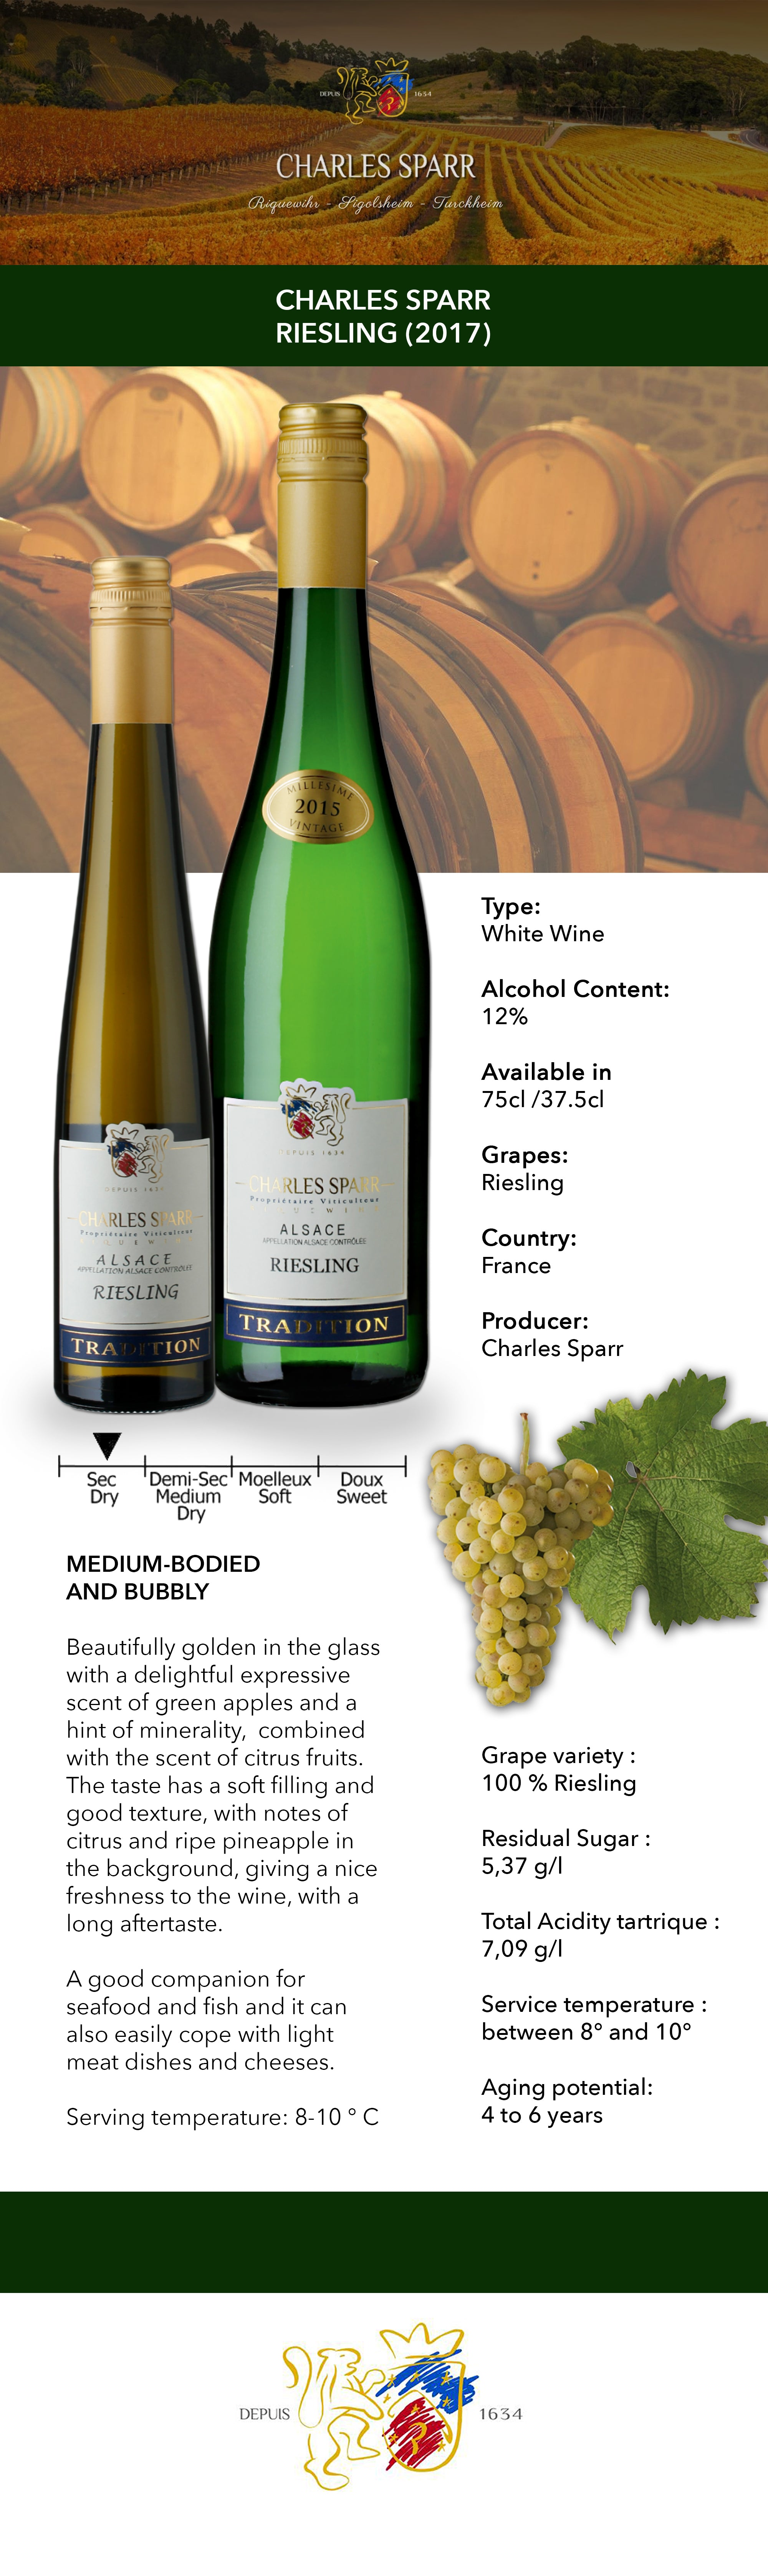 Charles Sparr Alsace Riesling